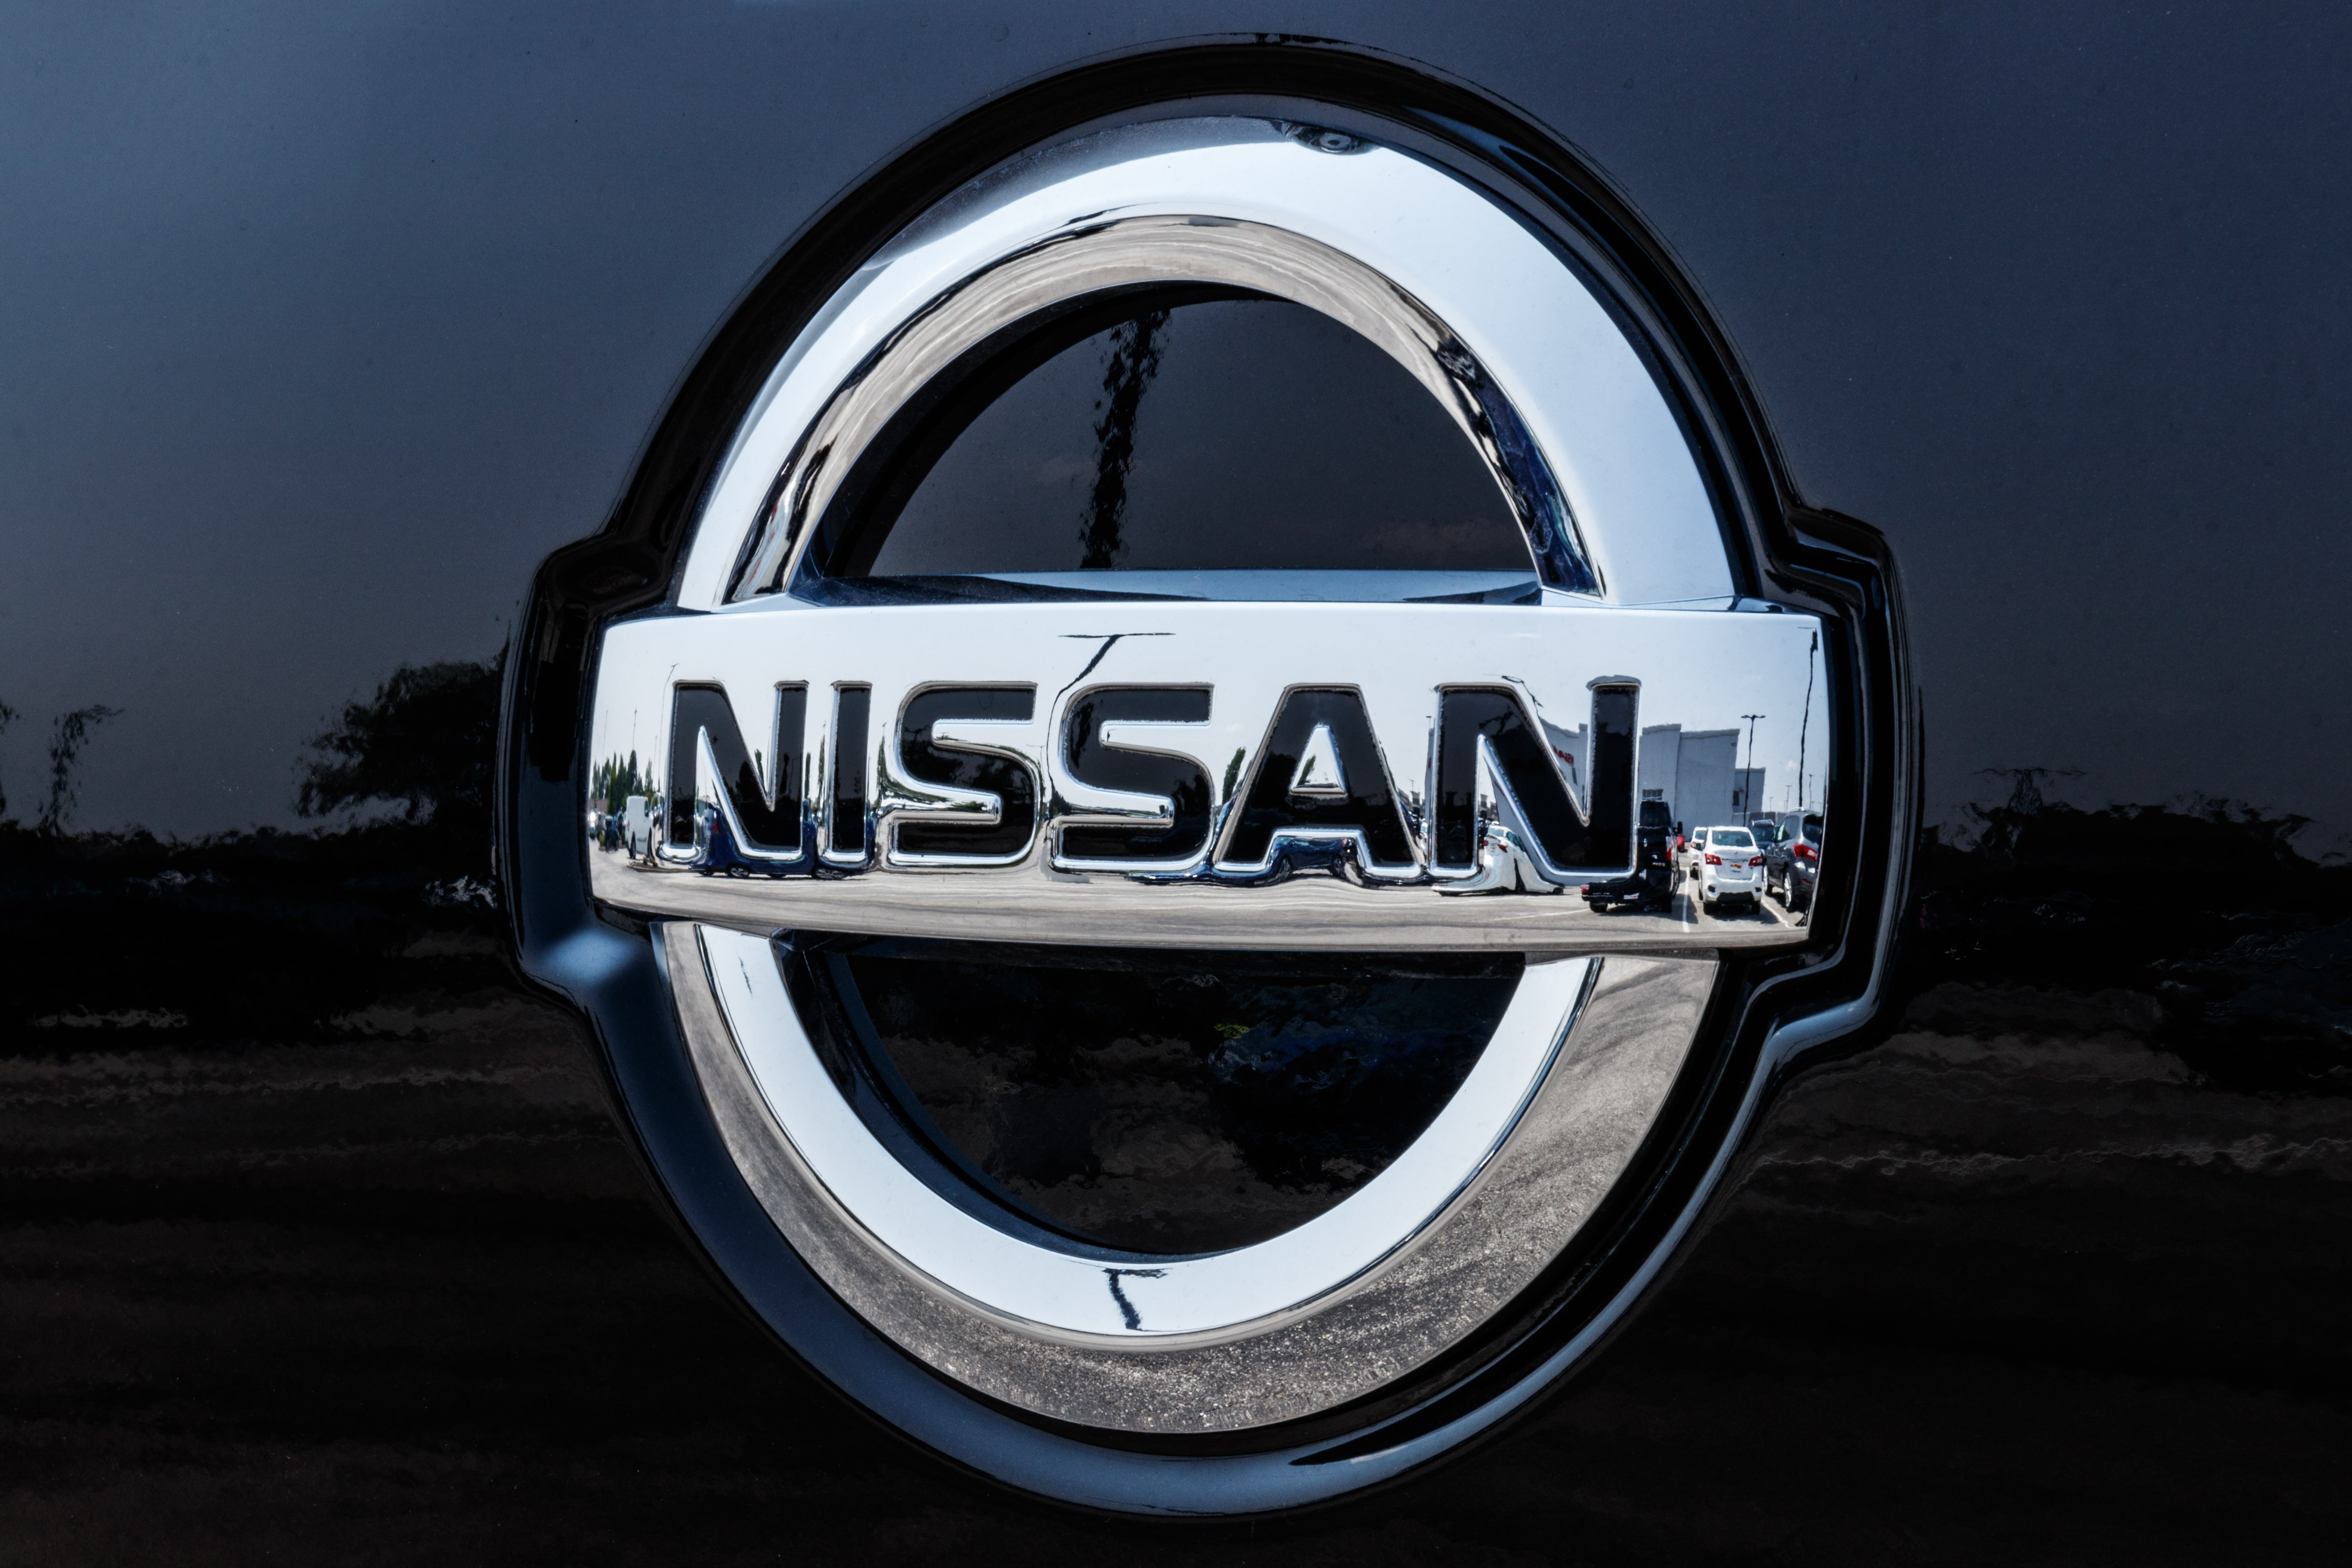 Best HIgh Mileage Tires for a Nissan ...